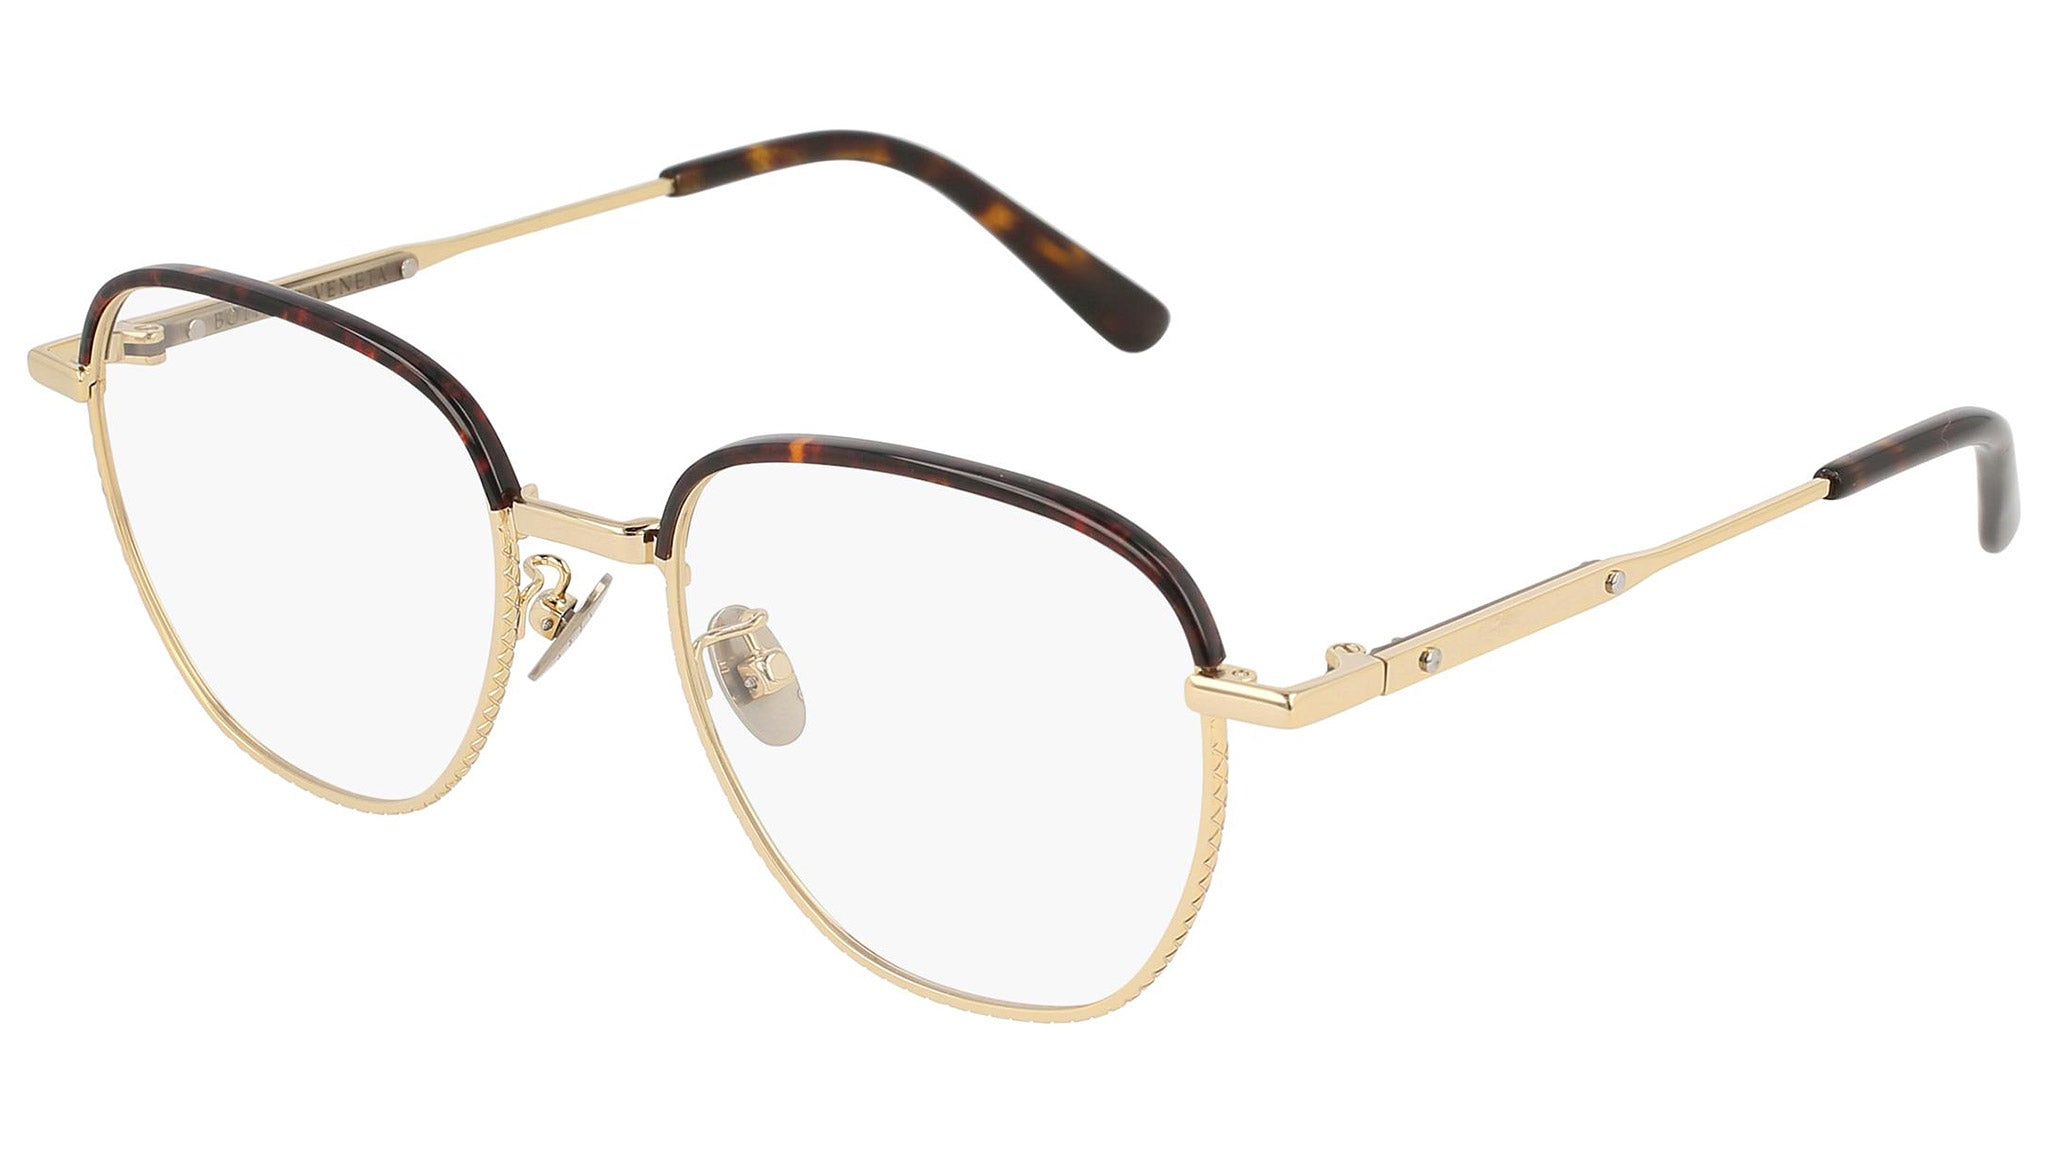 BV0173O 003 light gold and dark havana